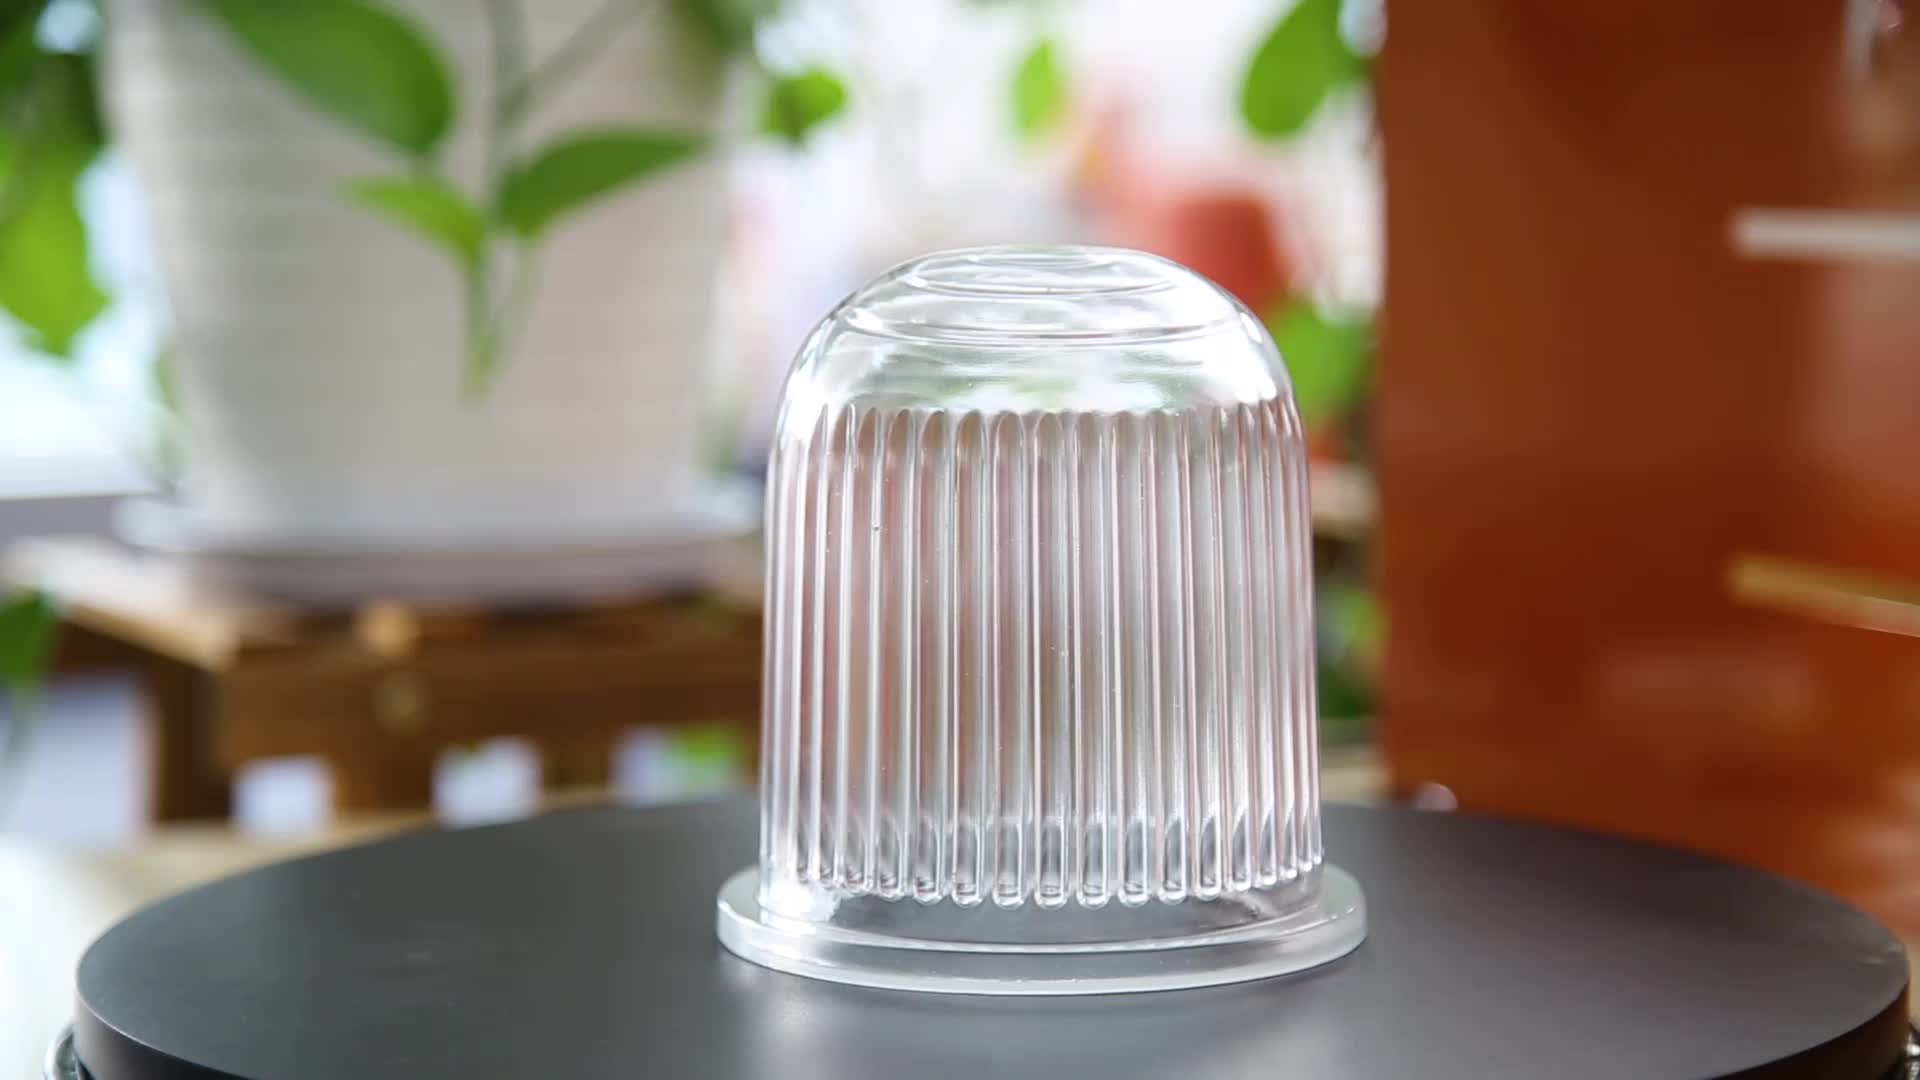 Super thickness outdoor dome glass lamp shade with tempered treatment